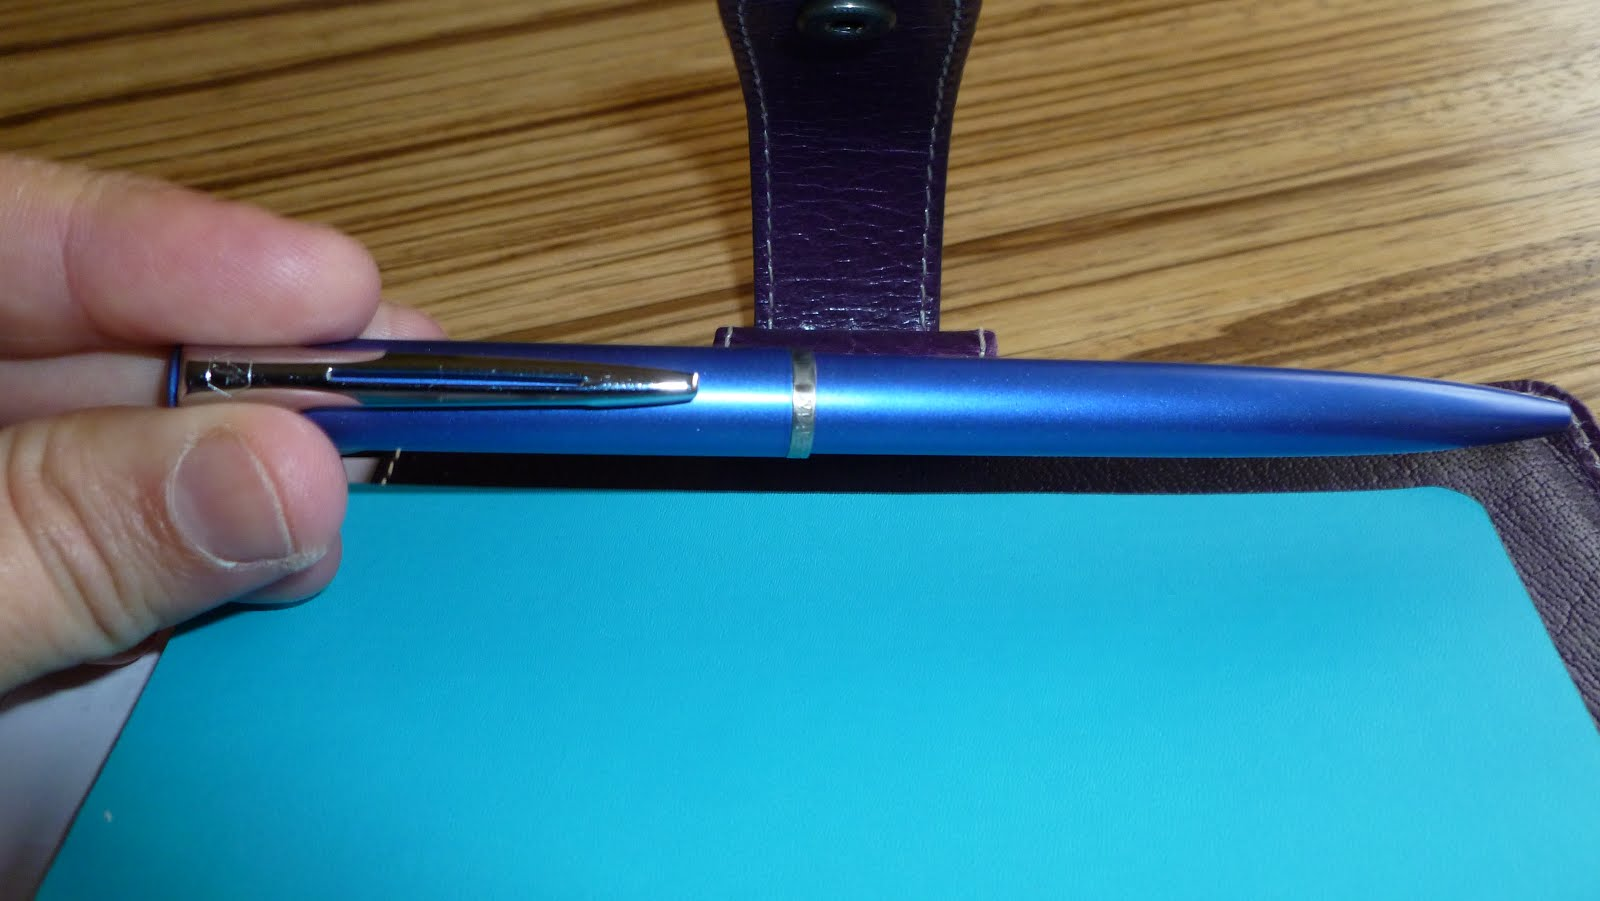 kandy pen slim how to use